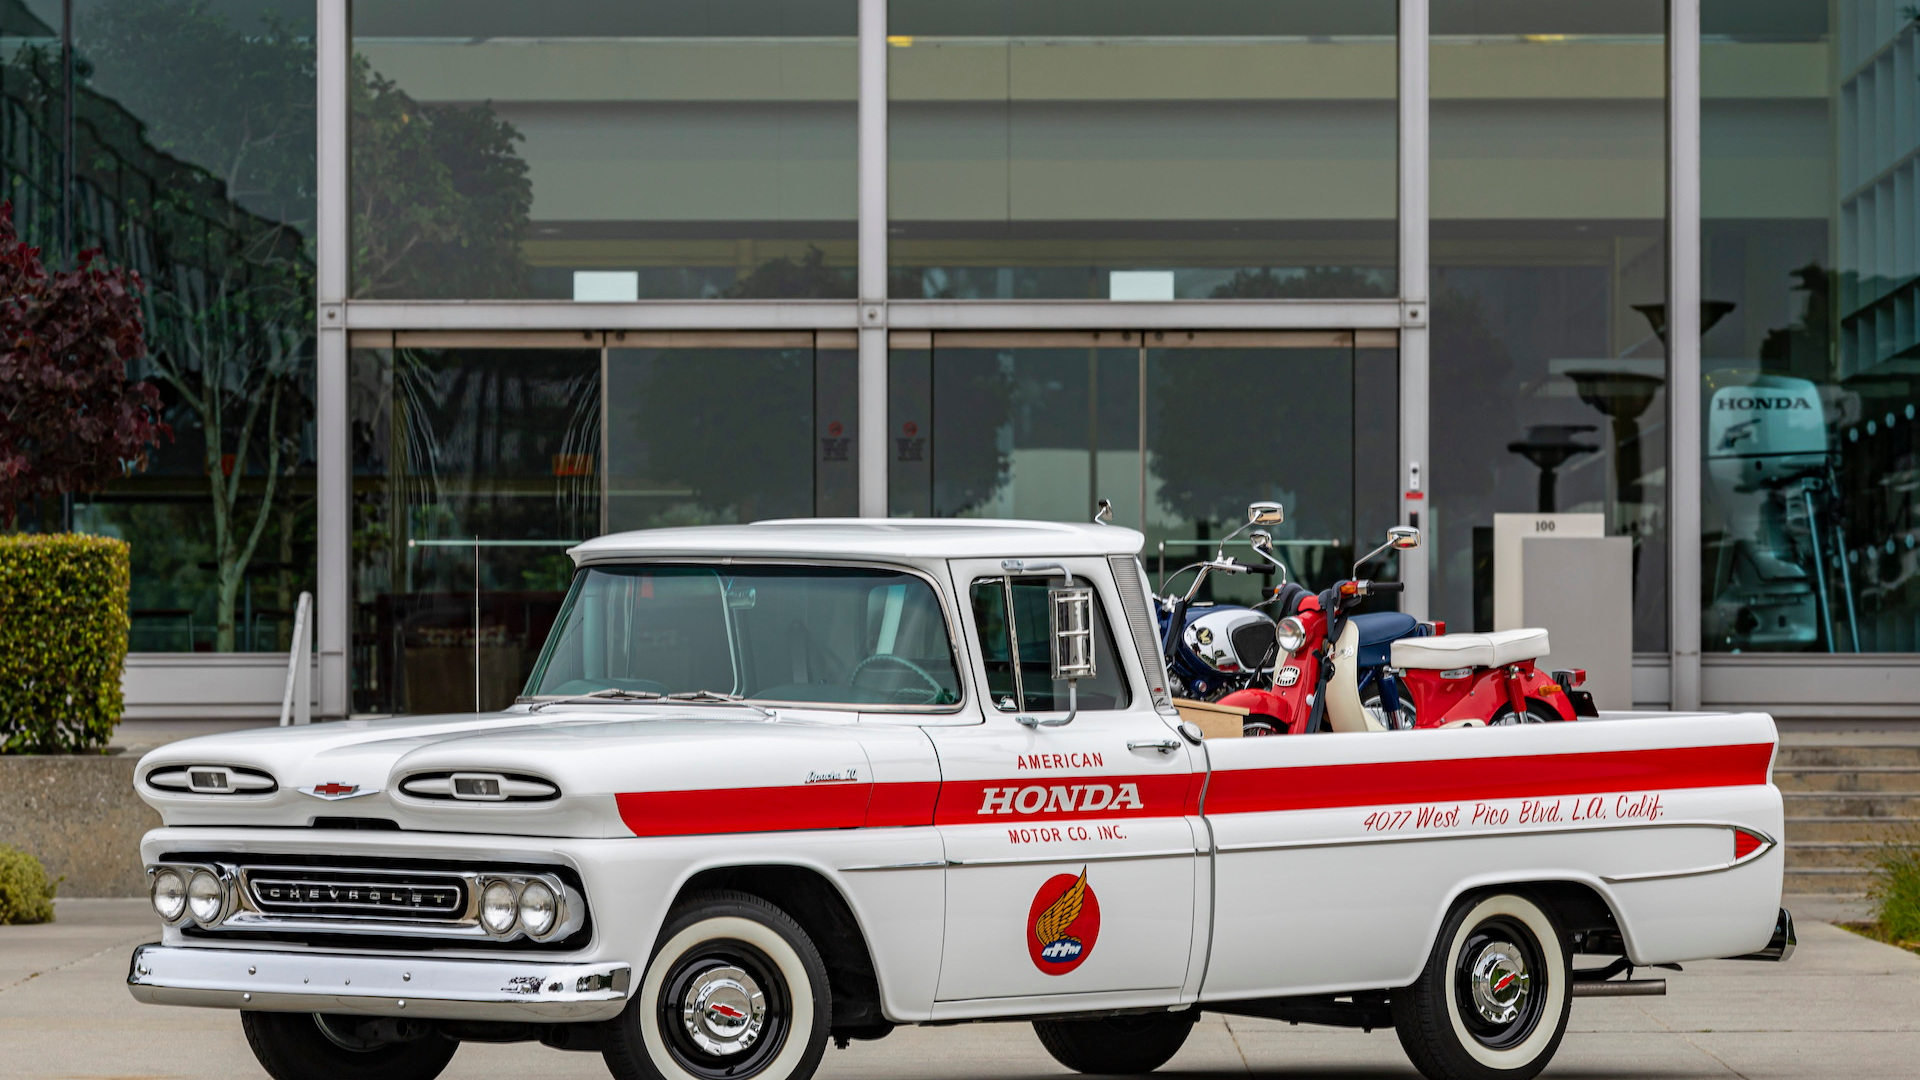 Honda-restored 1961 Chevrolet Apache 10 pickup for 60th anniversary